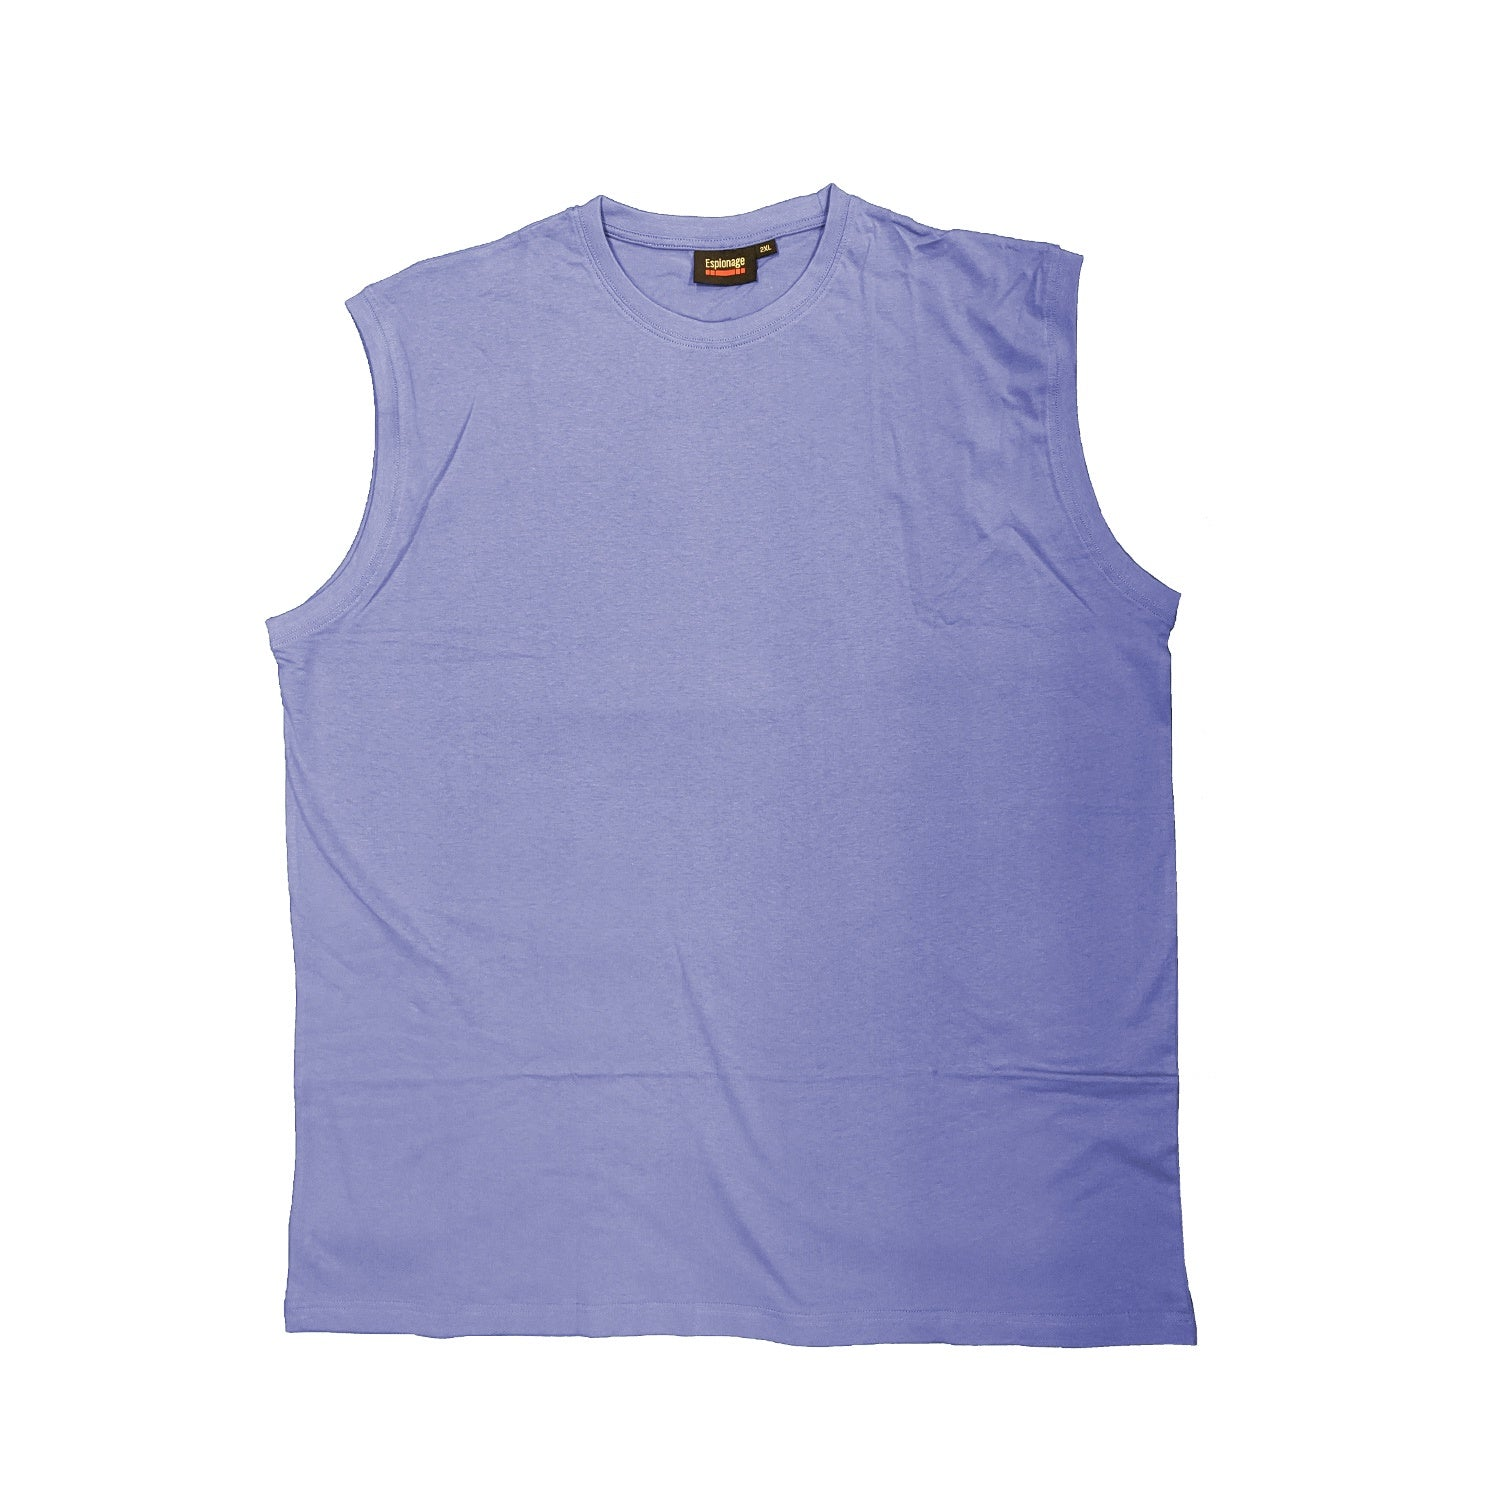 Espionage Sleeveless Tee - T113 - Powder Blue 1